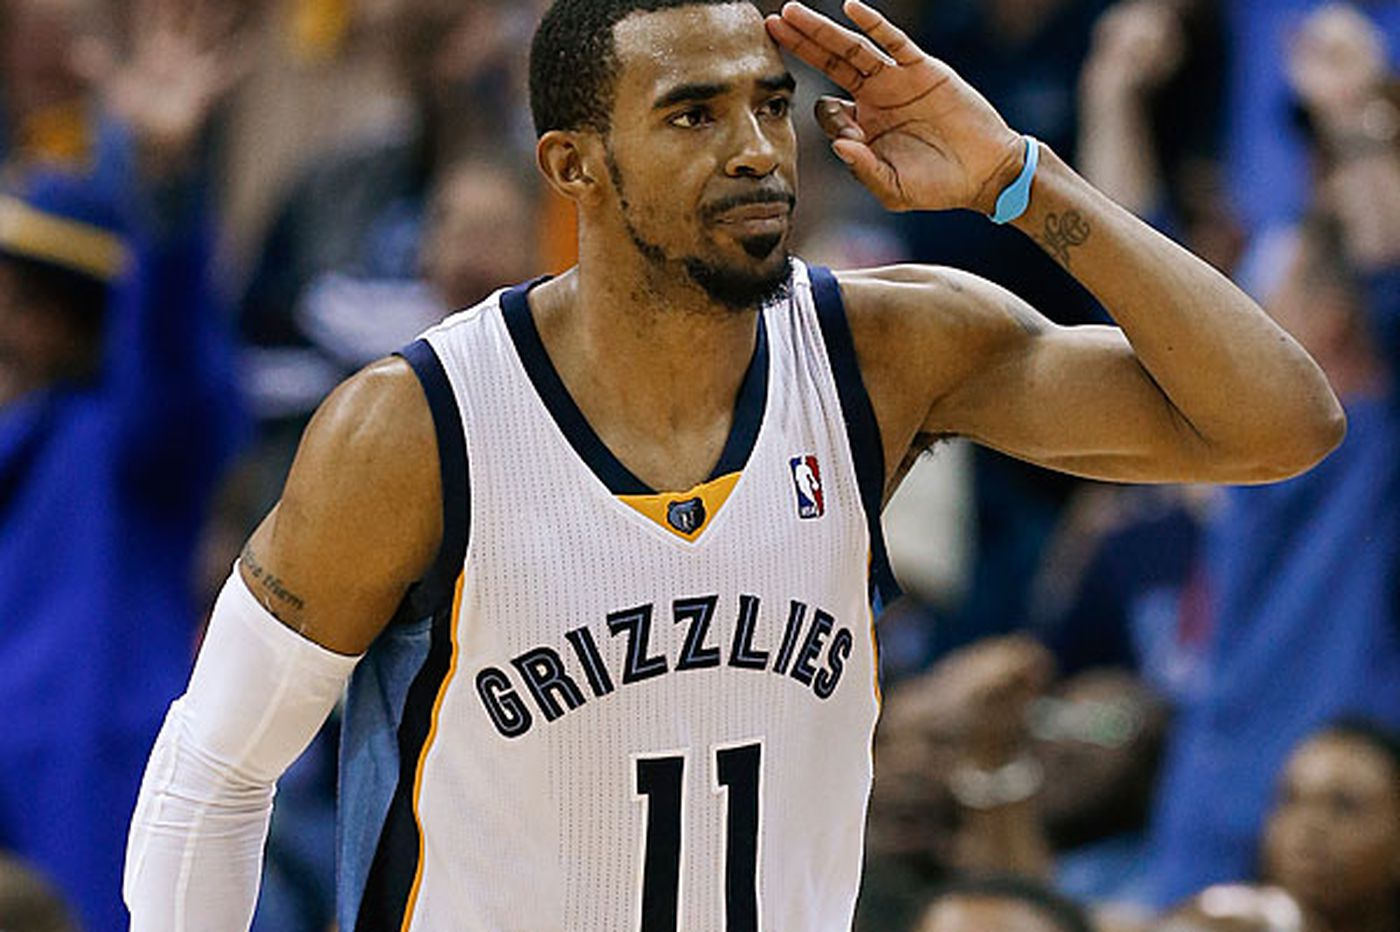 Grizzlies hold off Thunder in overtime to lead series, 2-1